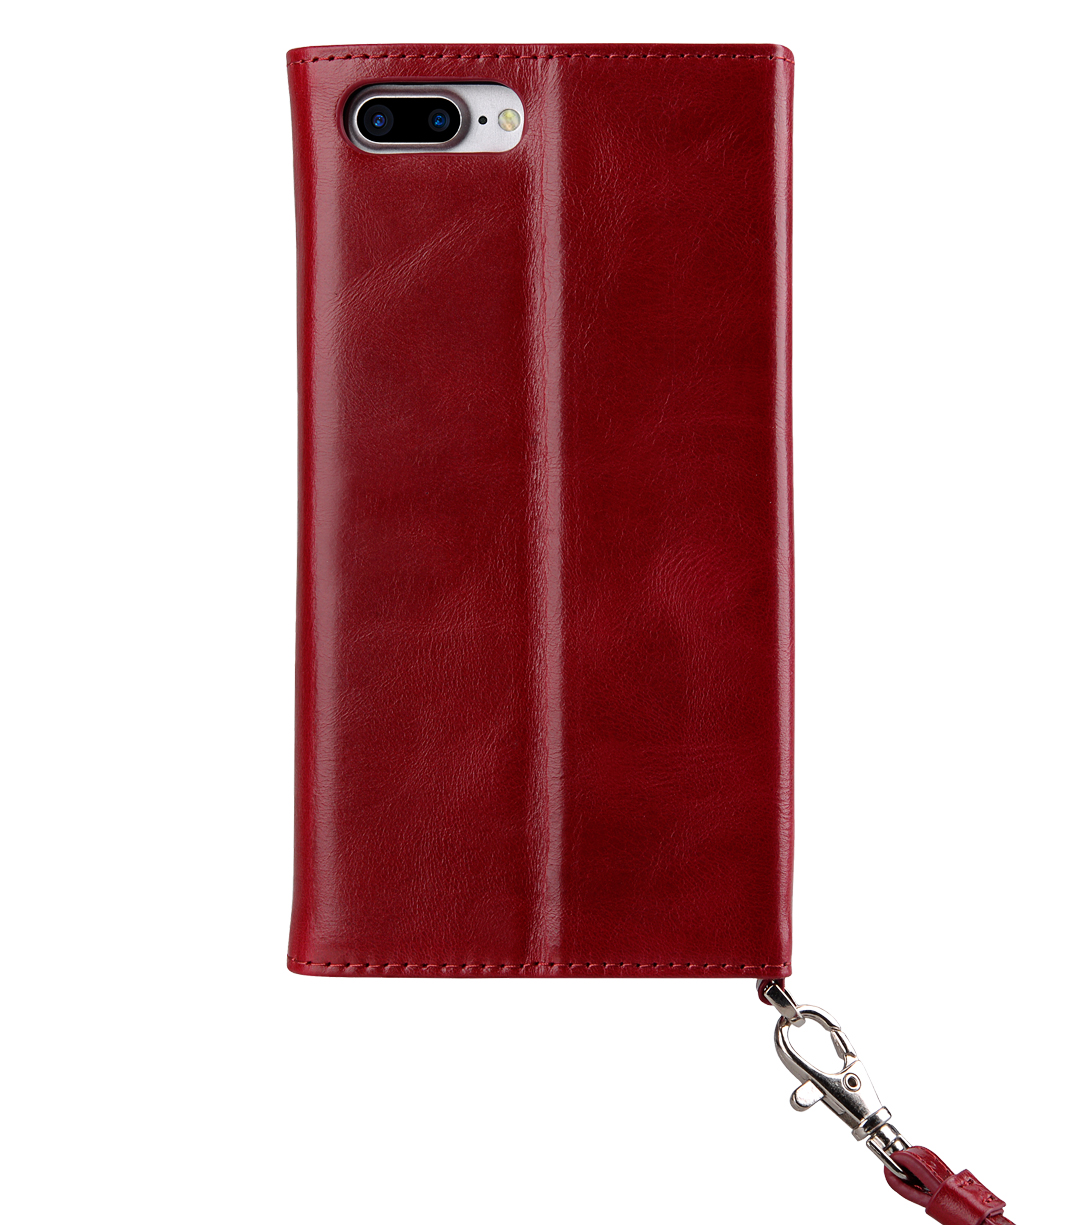 Melkco Fashion Folio Mappe Case for Apple iPhone 7 / 8 Plus(5.5') (Red)